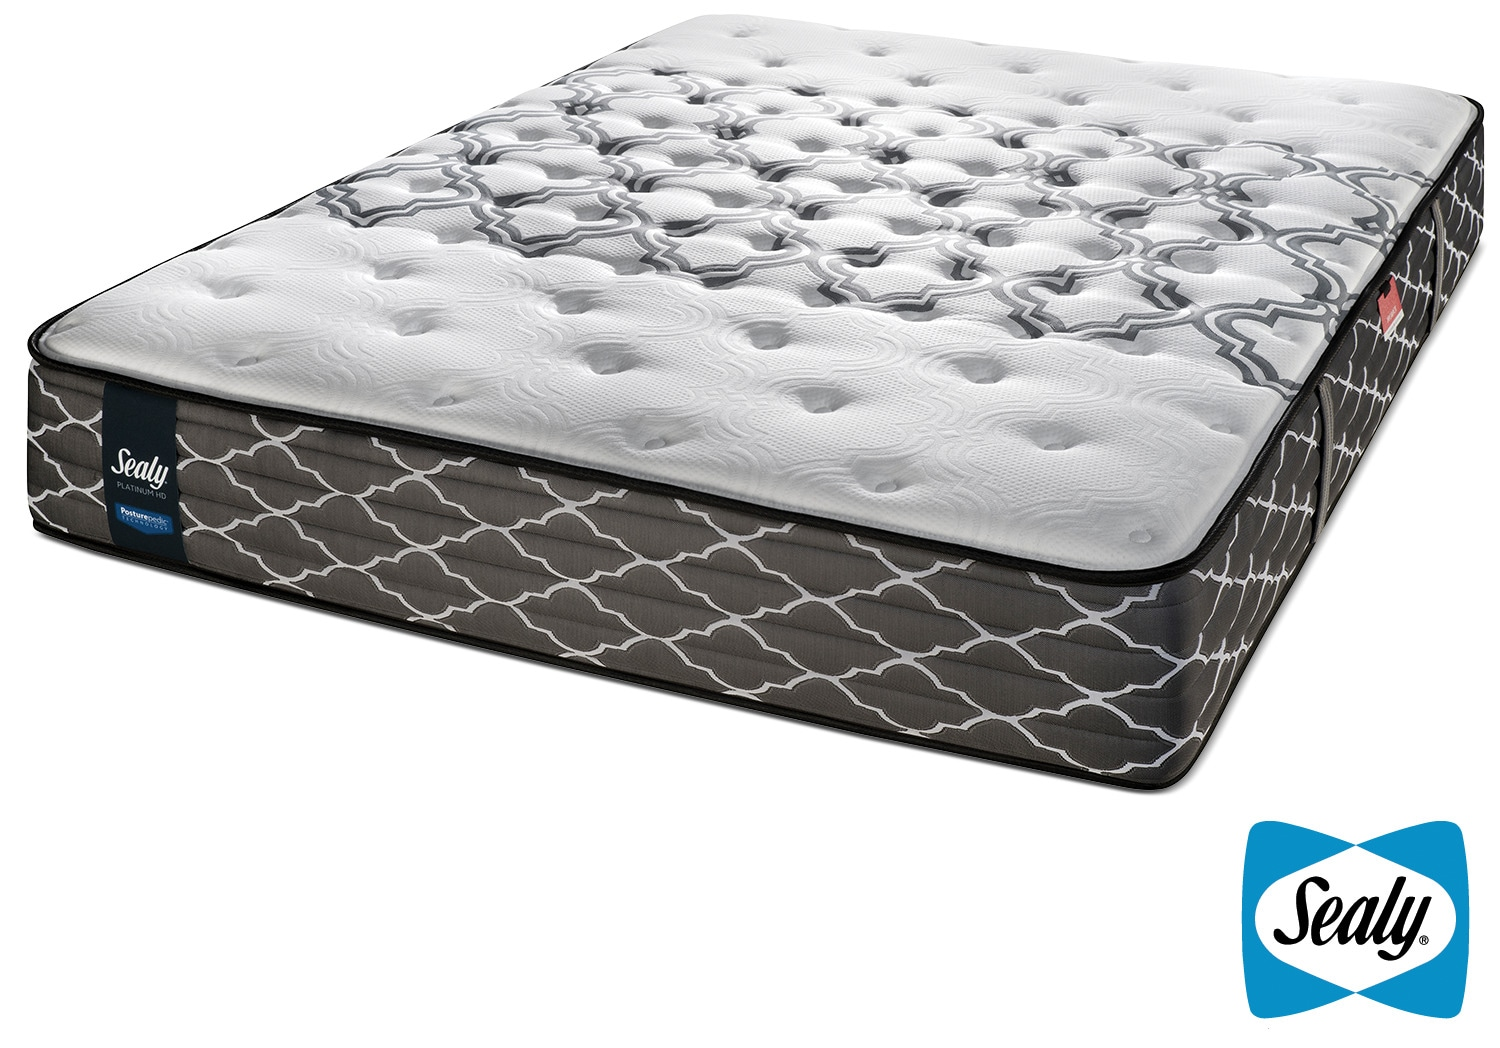 Sealy Late Night Hybrid Extra Firm King Mattress Leon 39 S